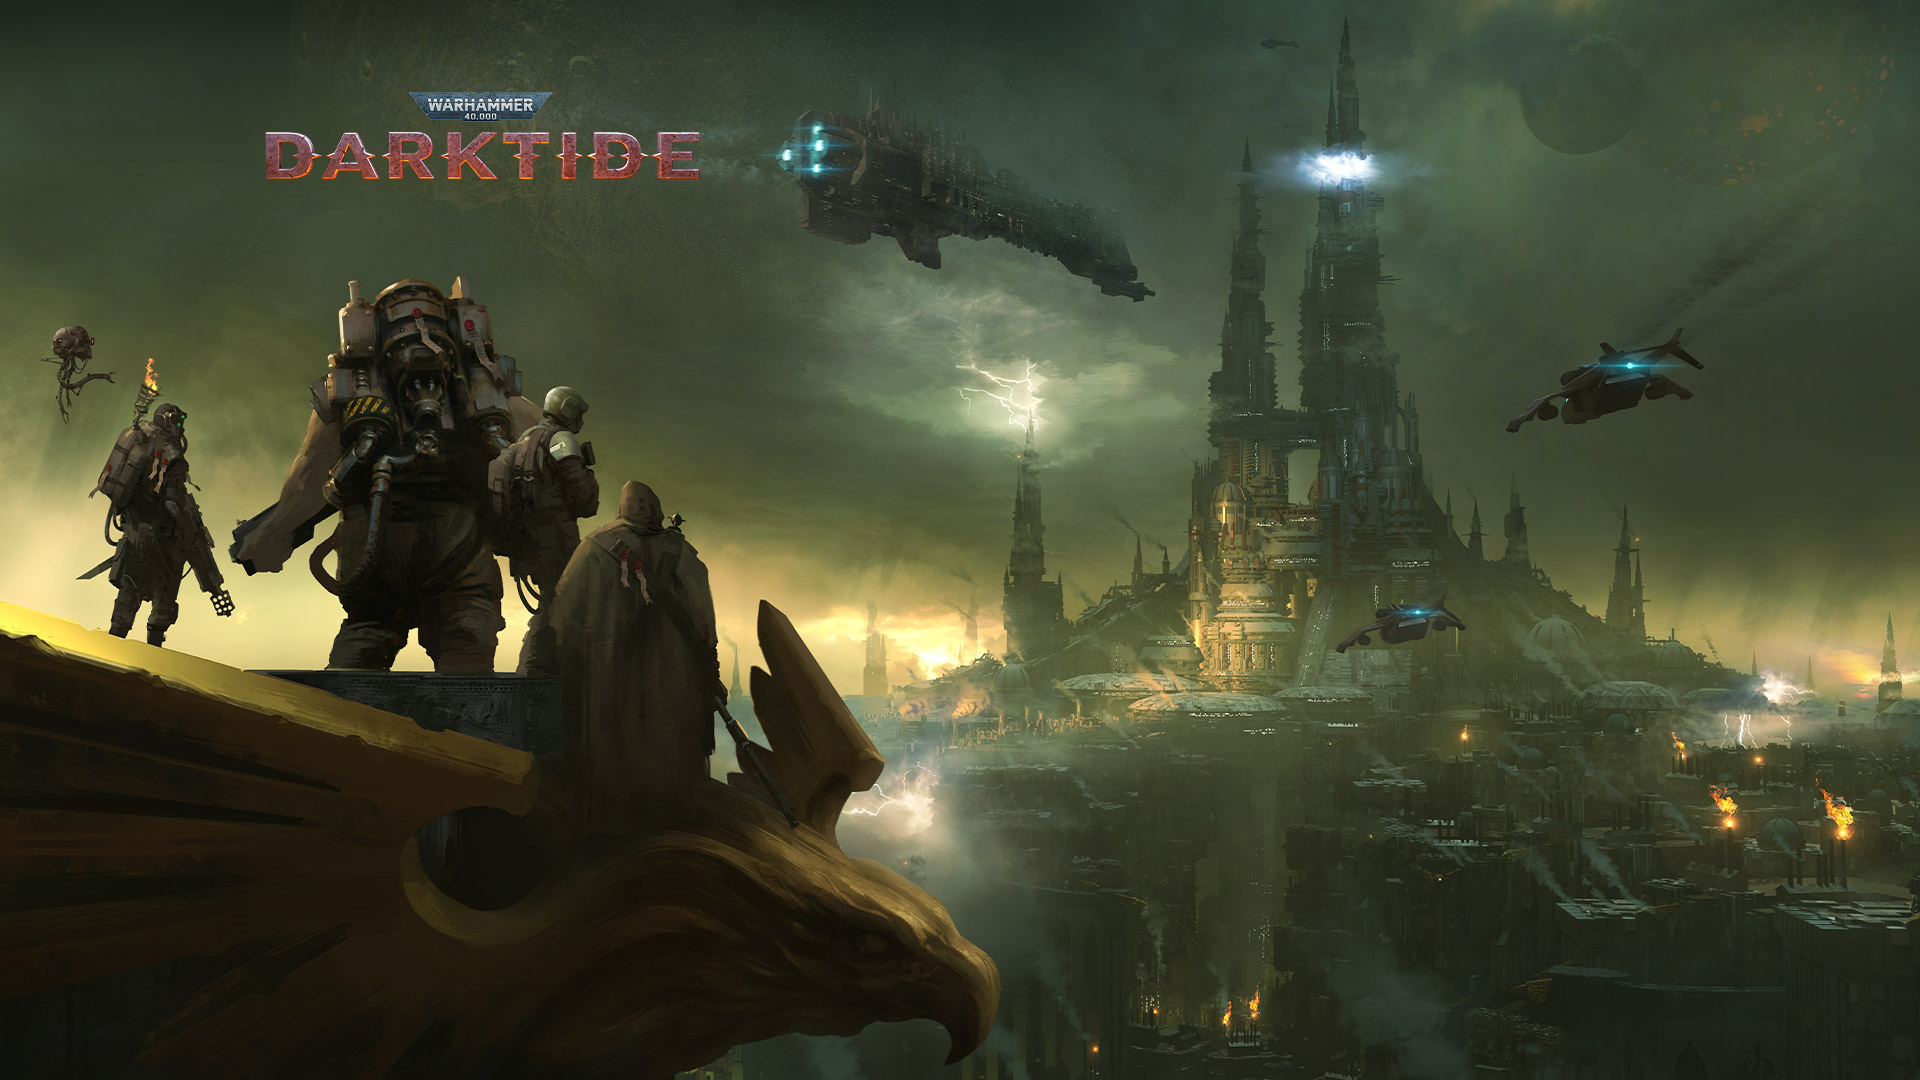 Warhammer 40,000 Darktide, a group of characters overlook a city shrouded in fog.